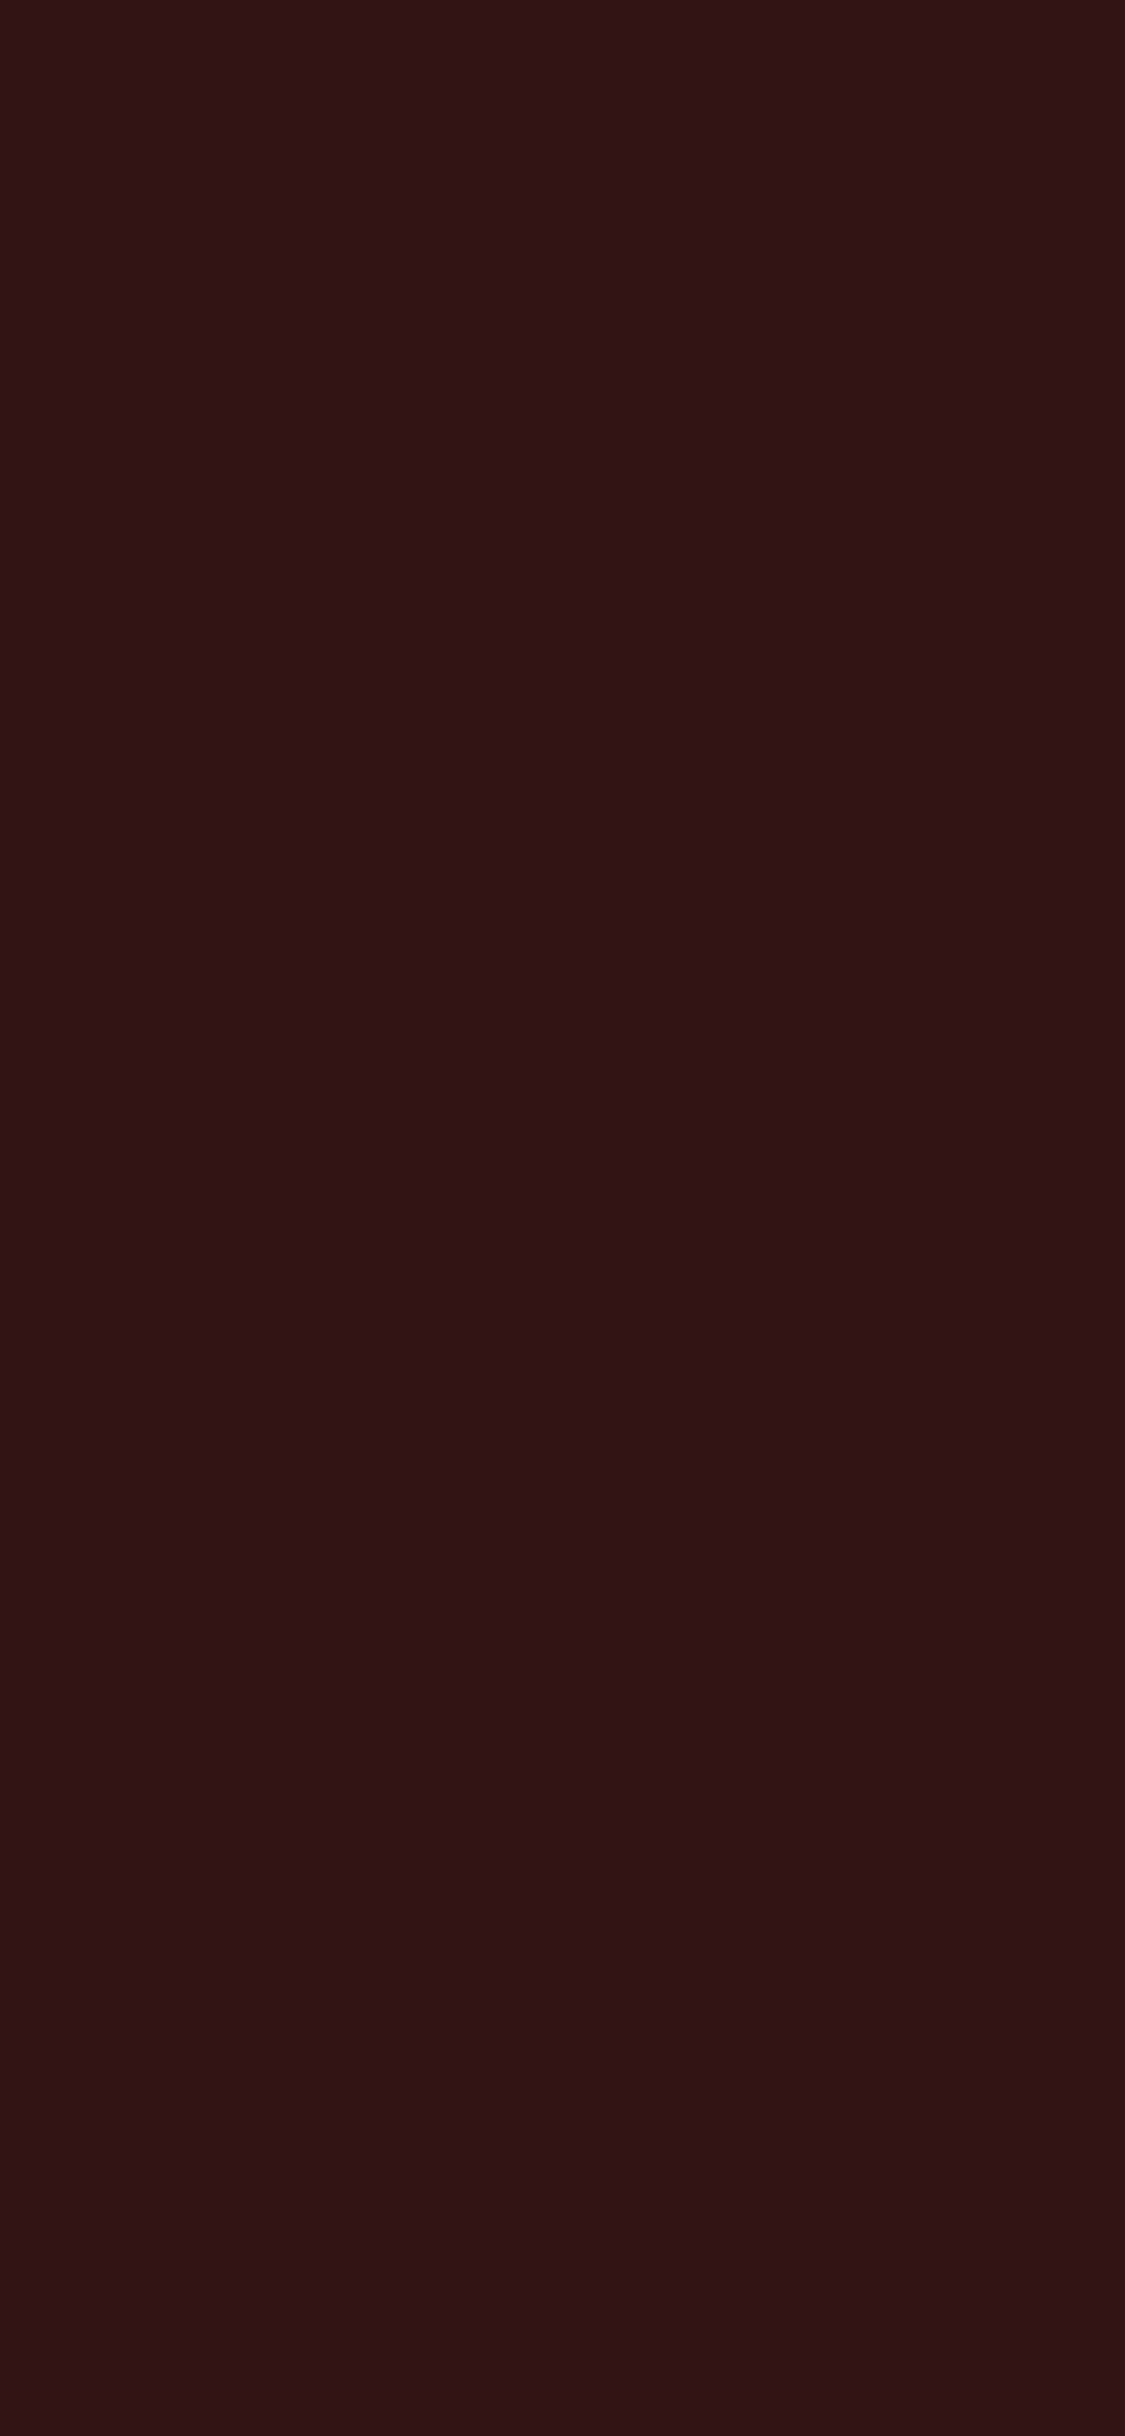 1125x2436 Seal Brown Solid Color Background